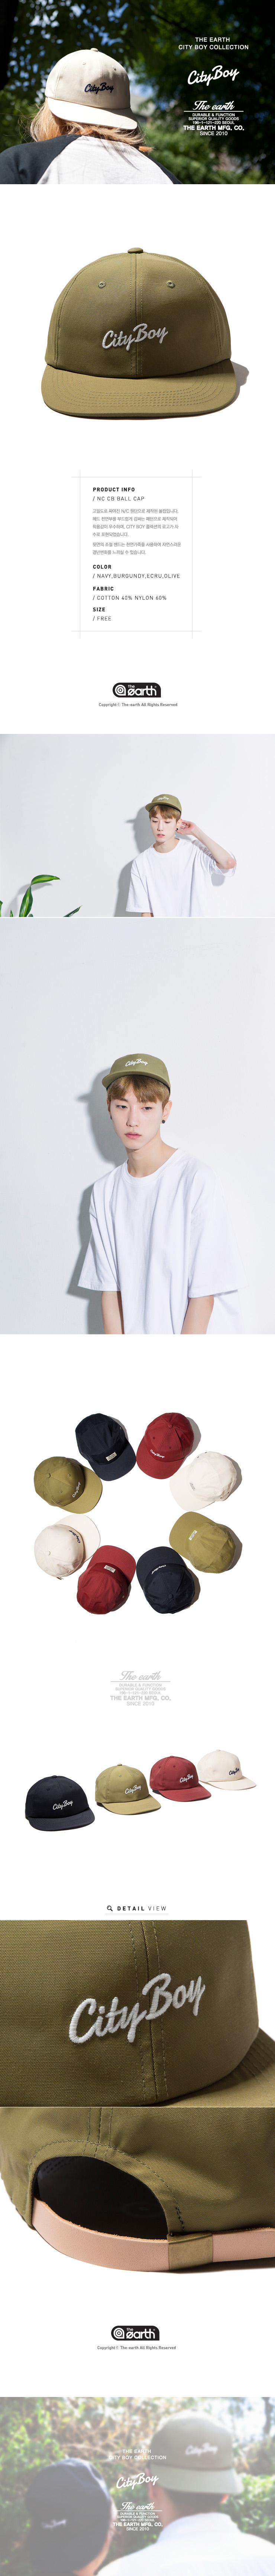 디얼스(THE EARTH) NC CB BALL CAP - OLIVE